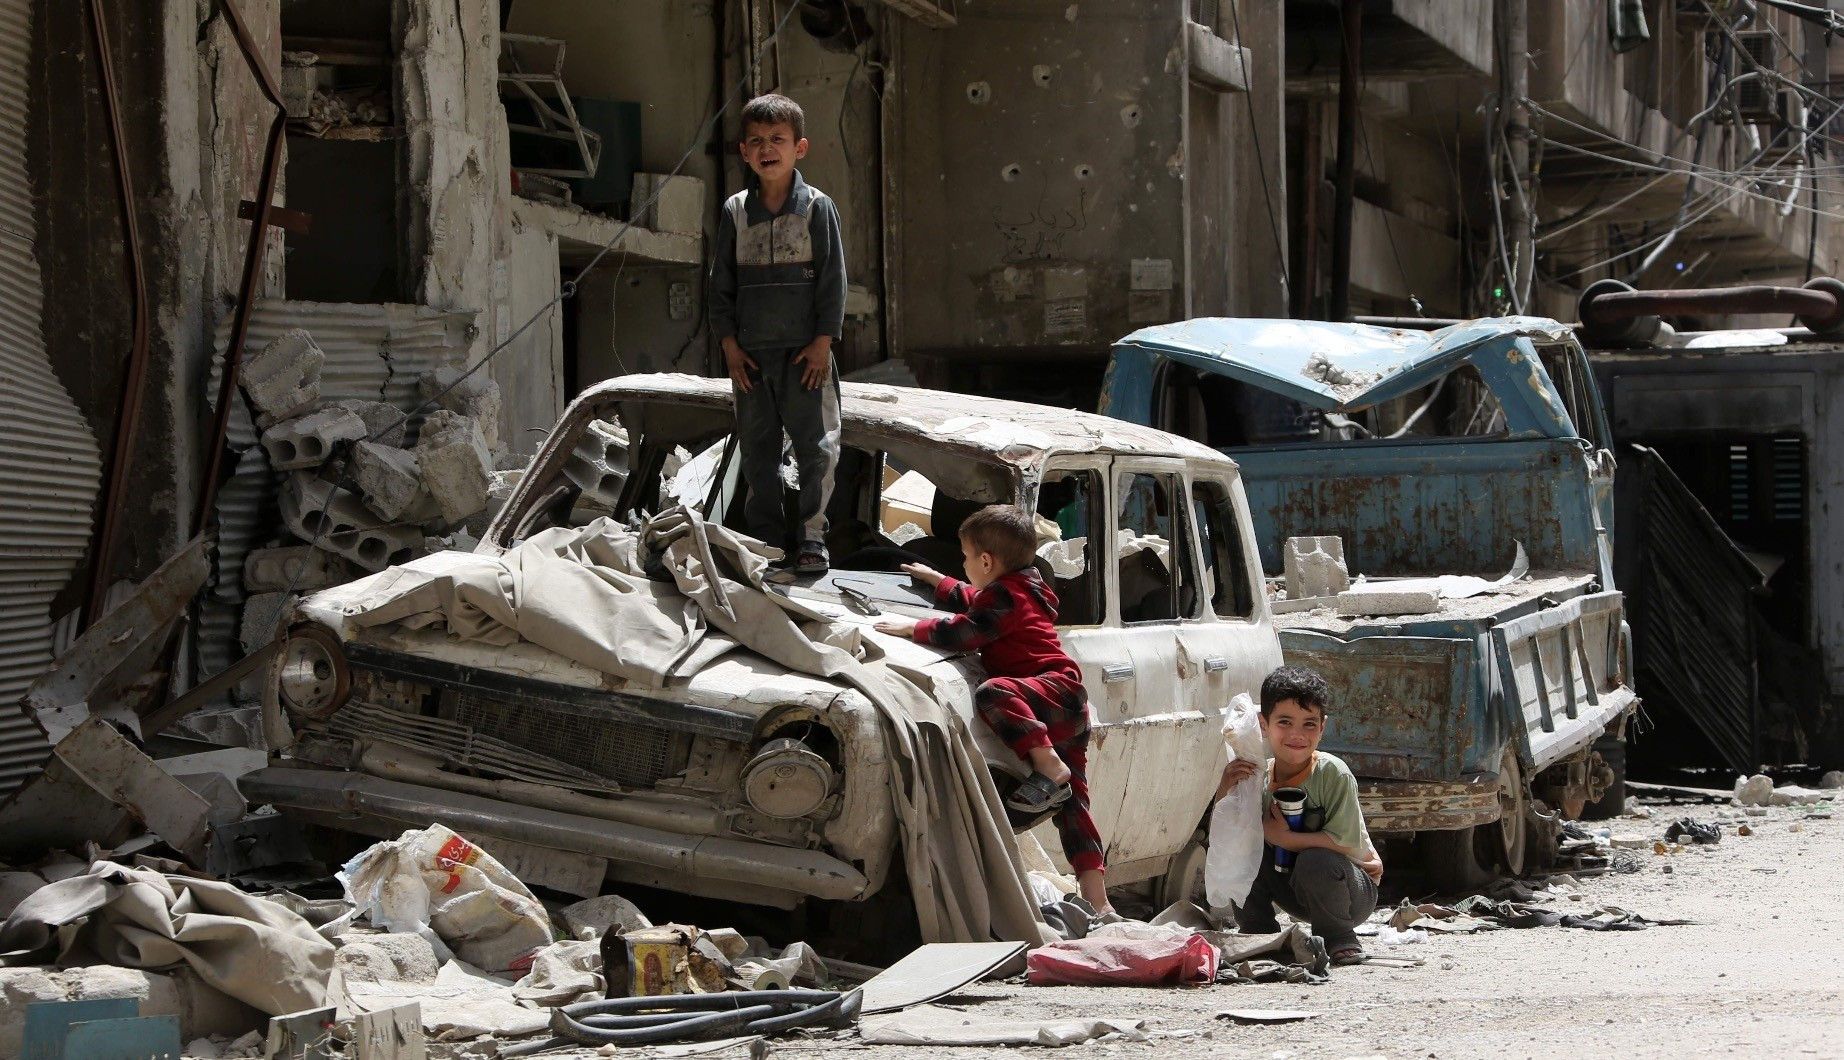 Syrian boys play on a destroyed car, Douma, on the outskirts of Damascus, April 19.